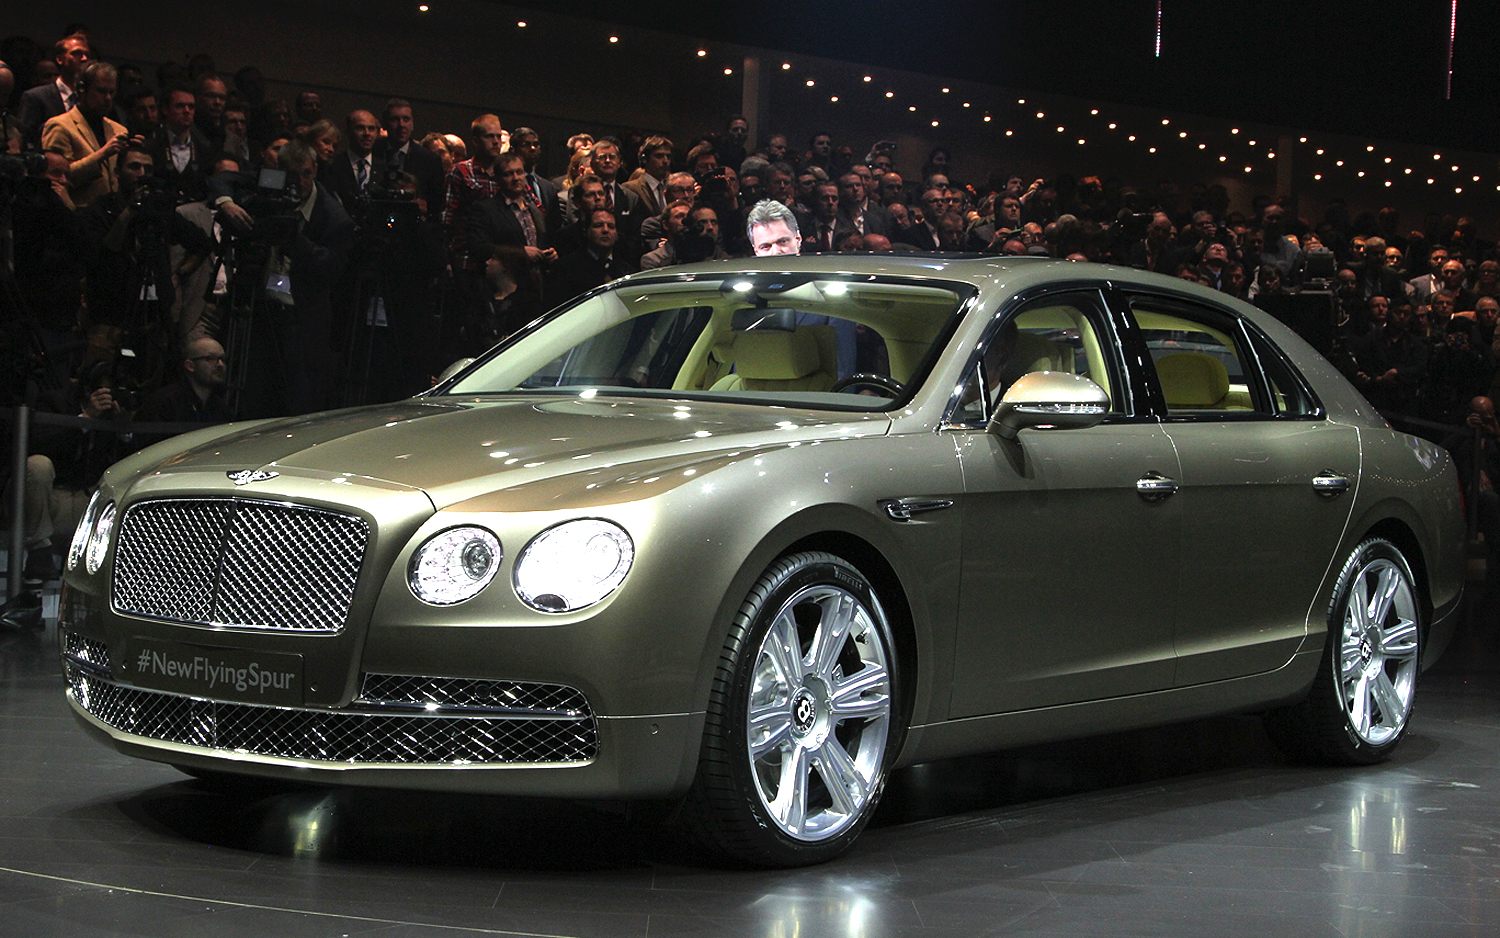 Bentley Flying Spur Debuts At Geneva, Is Most Powerful